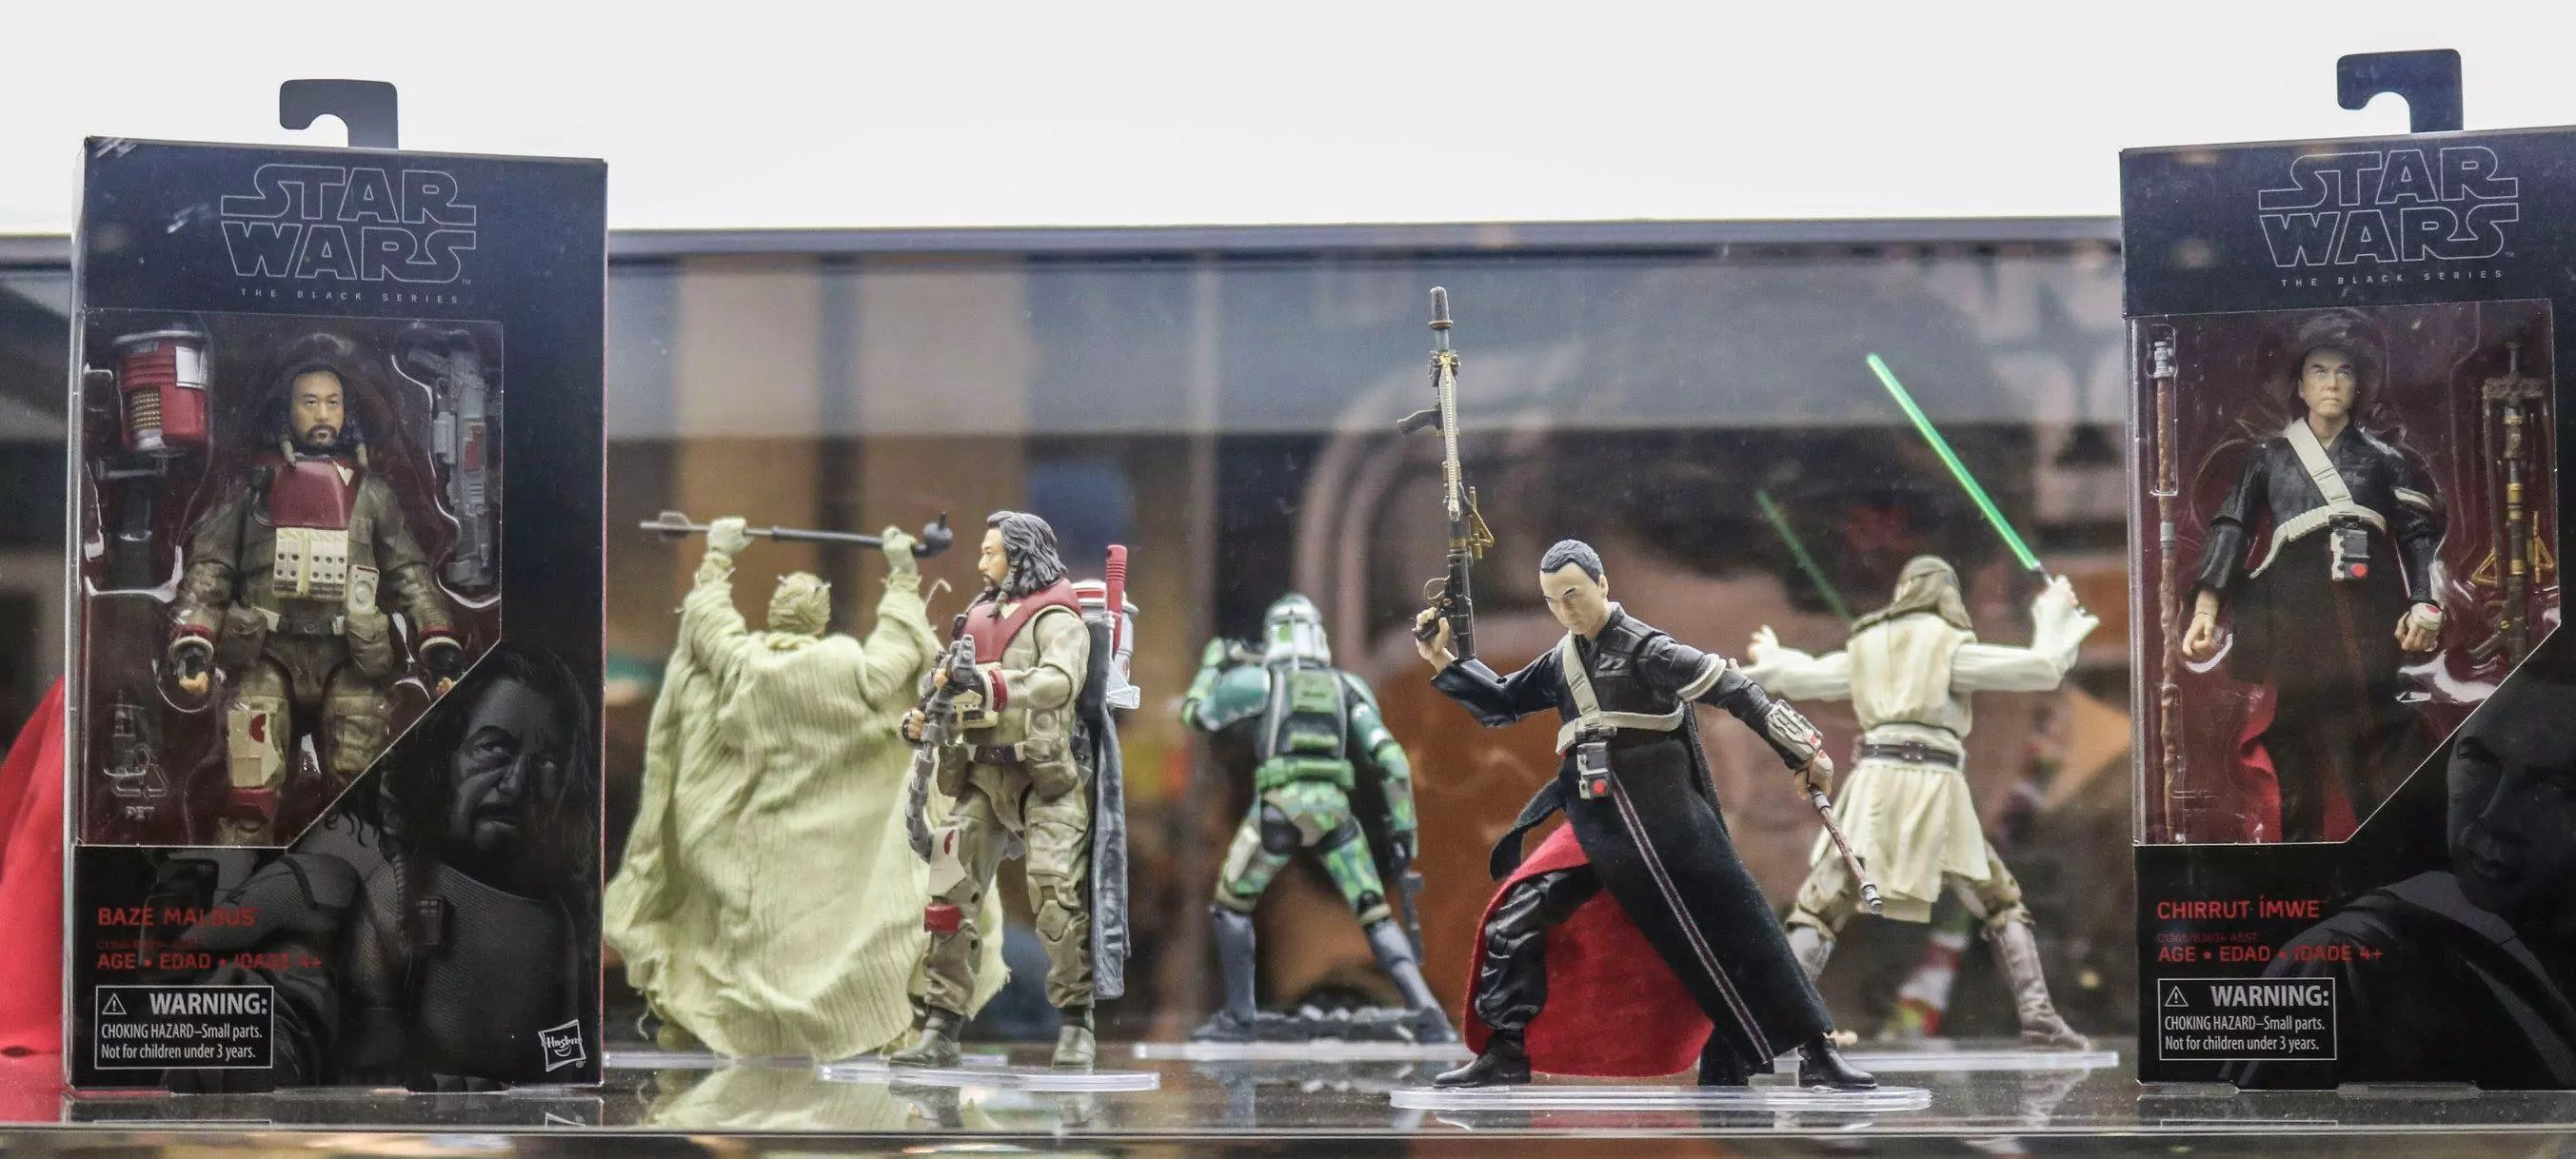 Habro's Black Series is sure to make an explosive appearance, as seen here at Star Wars Celebration Orlando